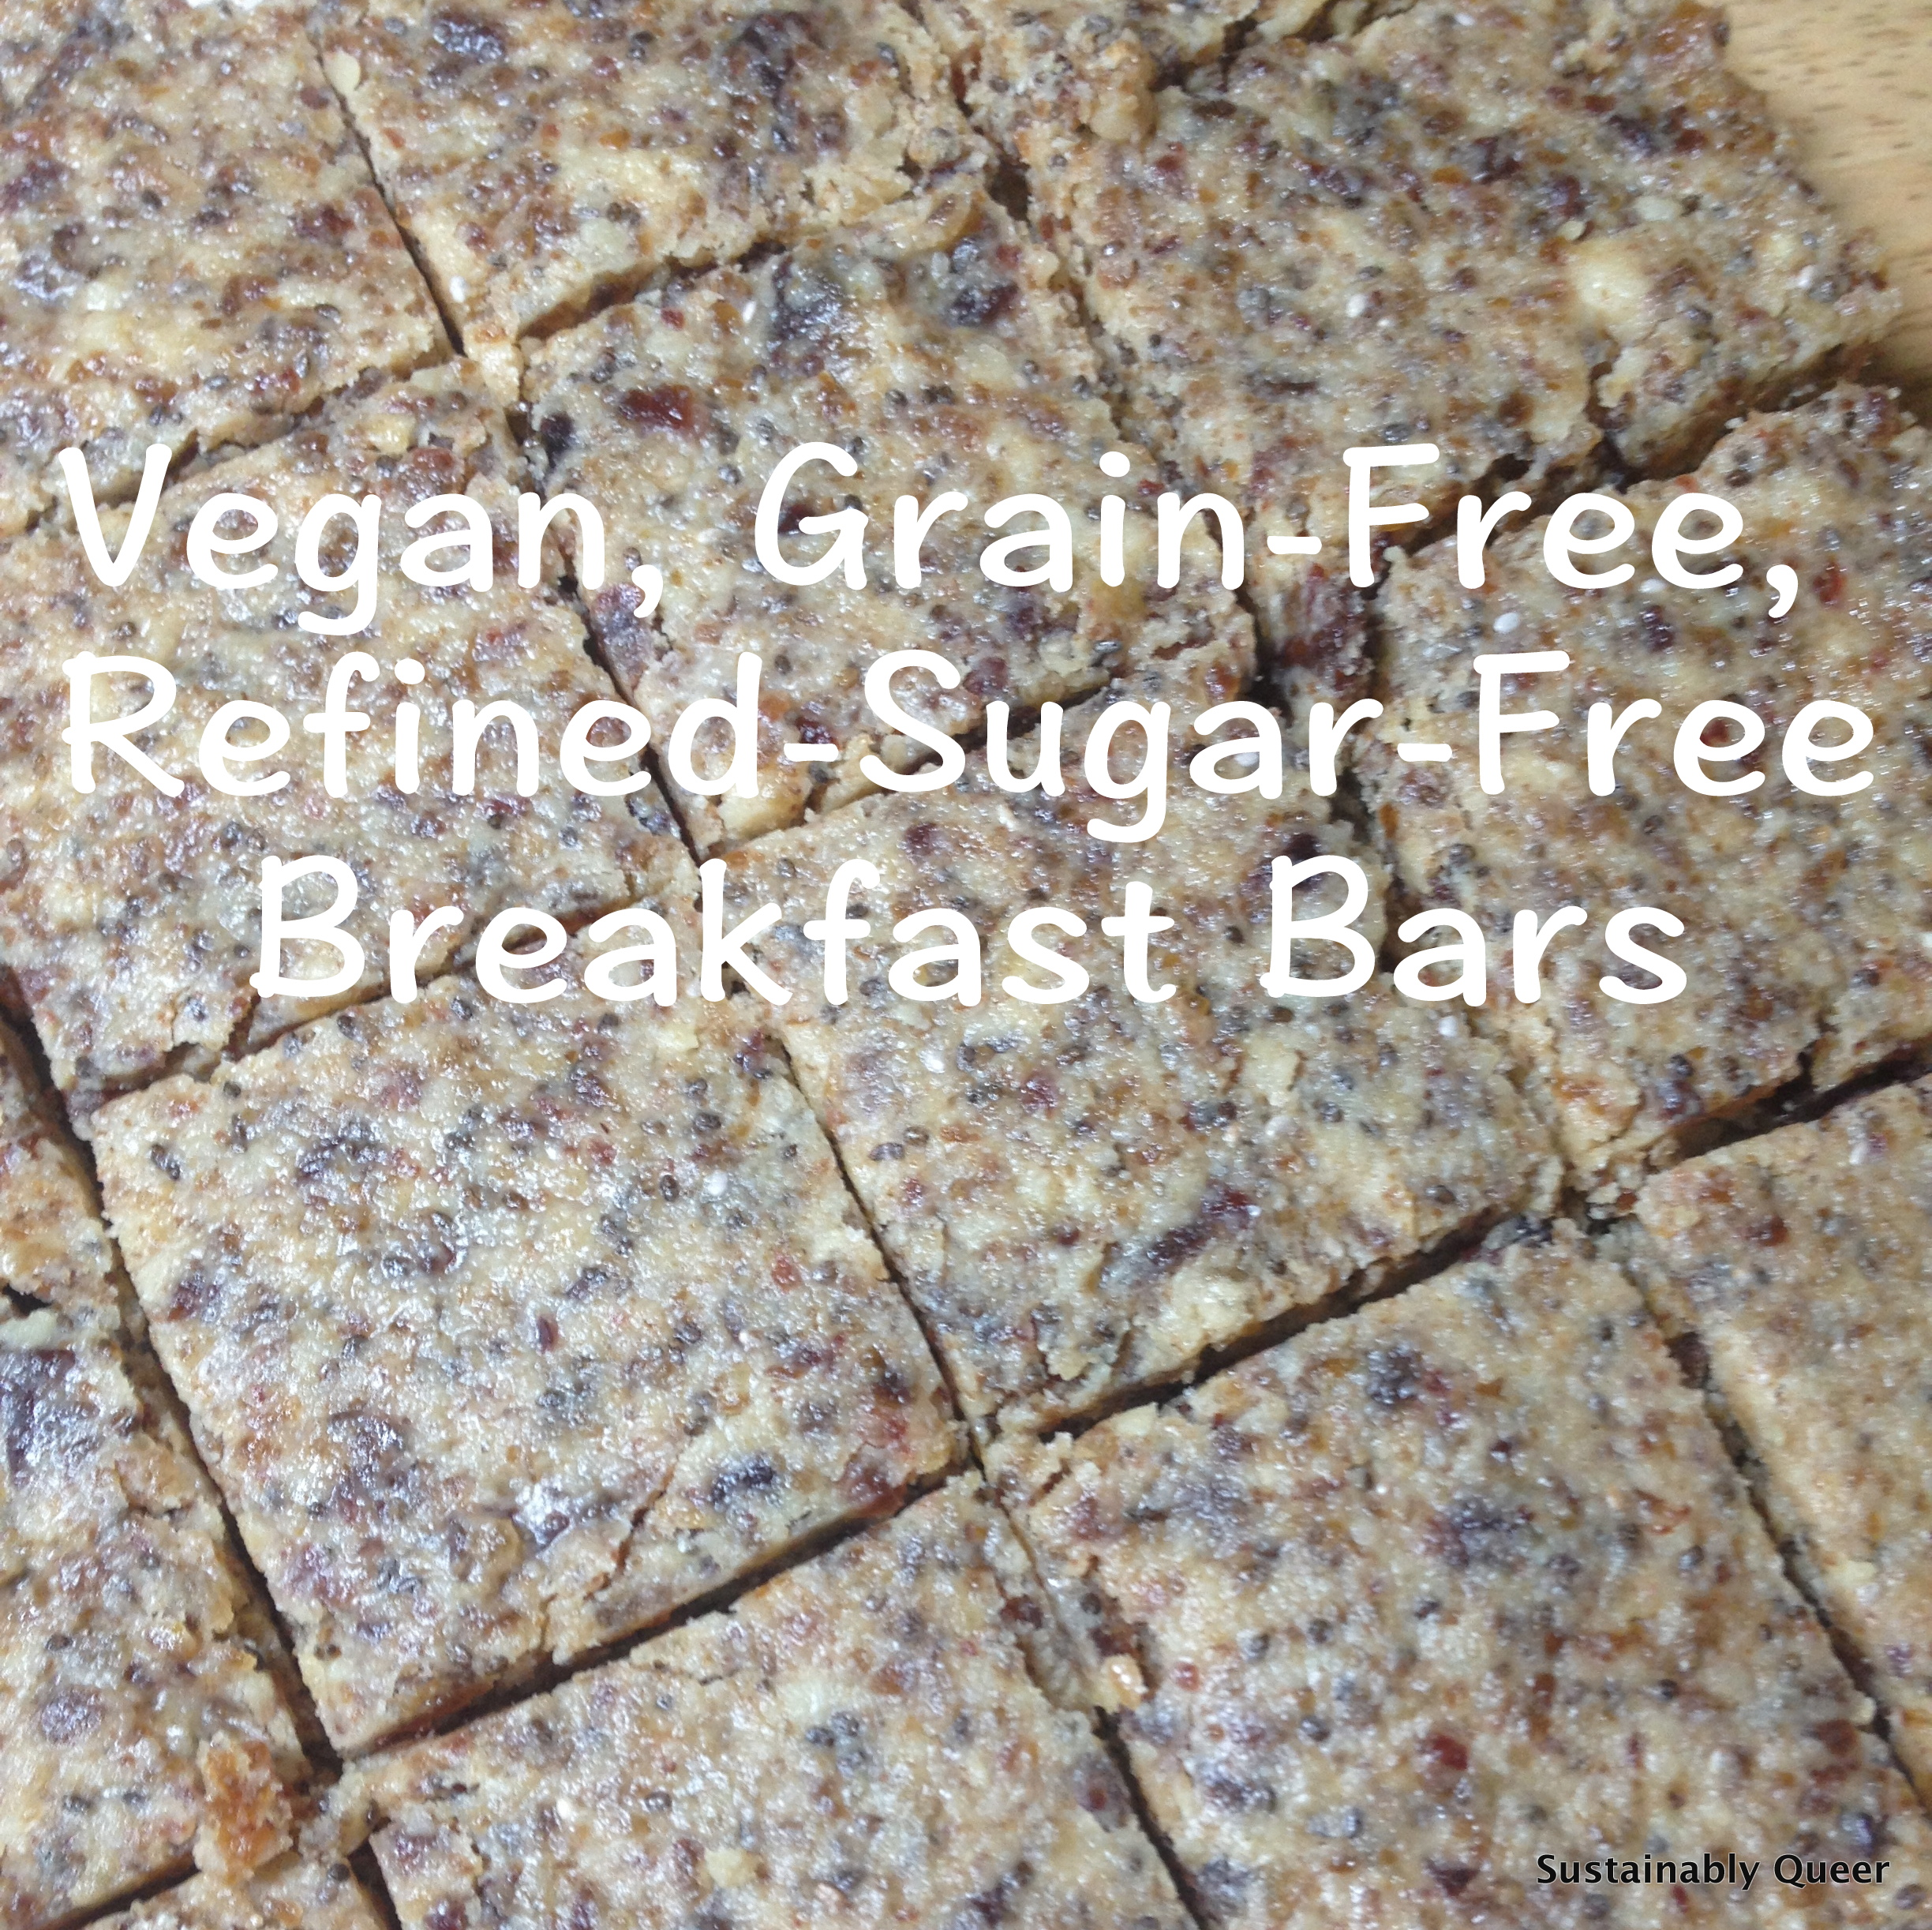 Vegan, Grain-Free, Refined-Sugar-Free Breakfast Bars